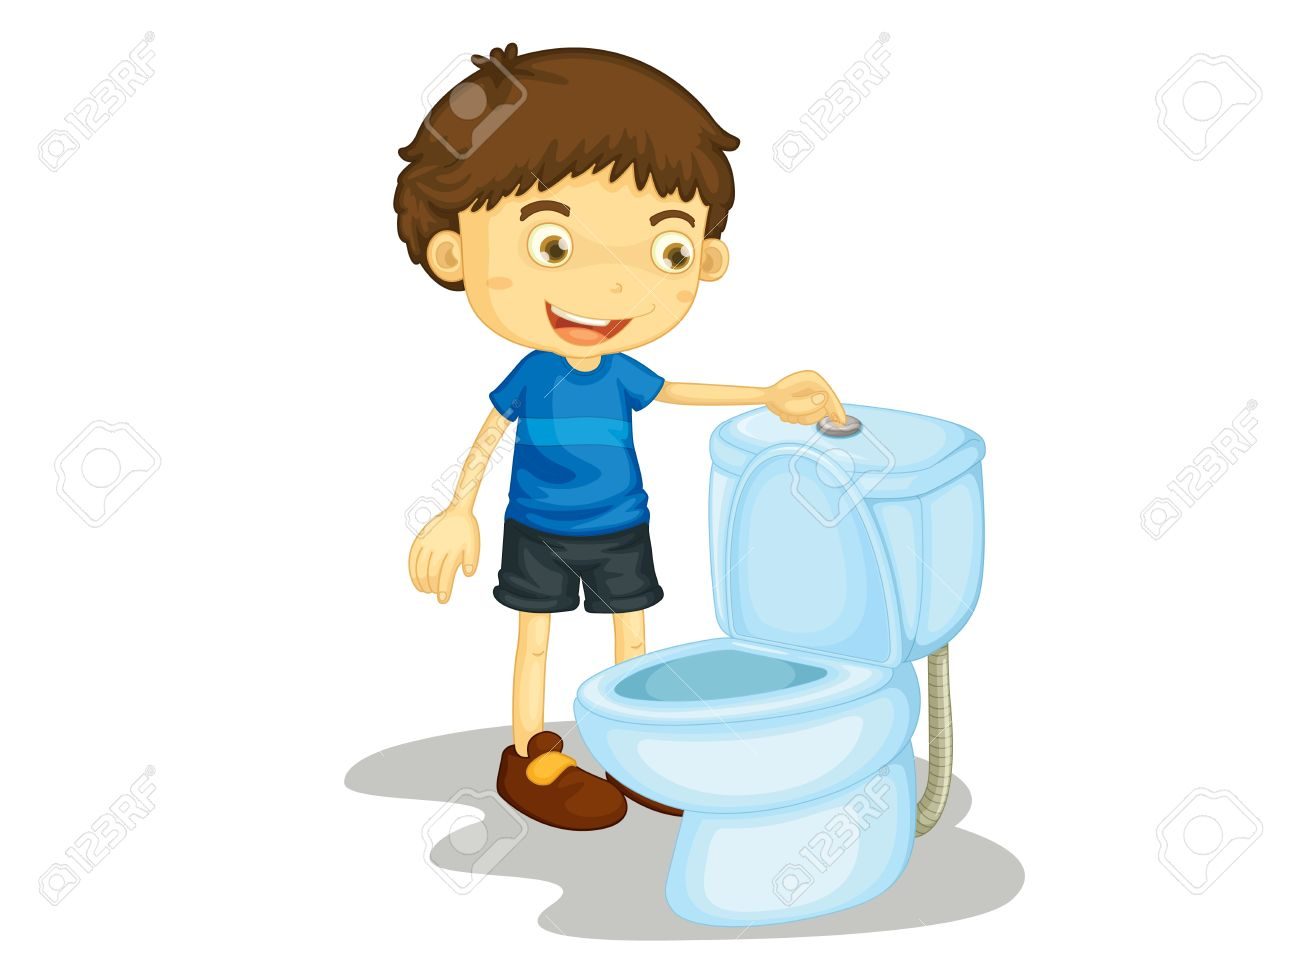 Kids cleaning bathroom clipart 7 » Clipart Station.